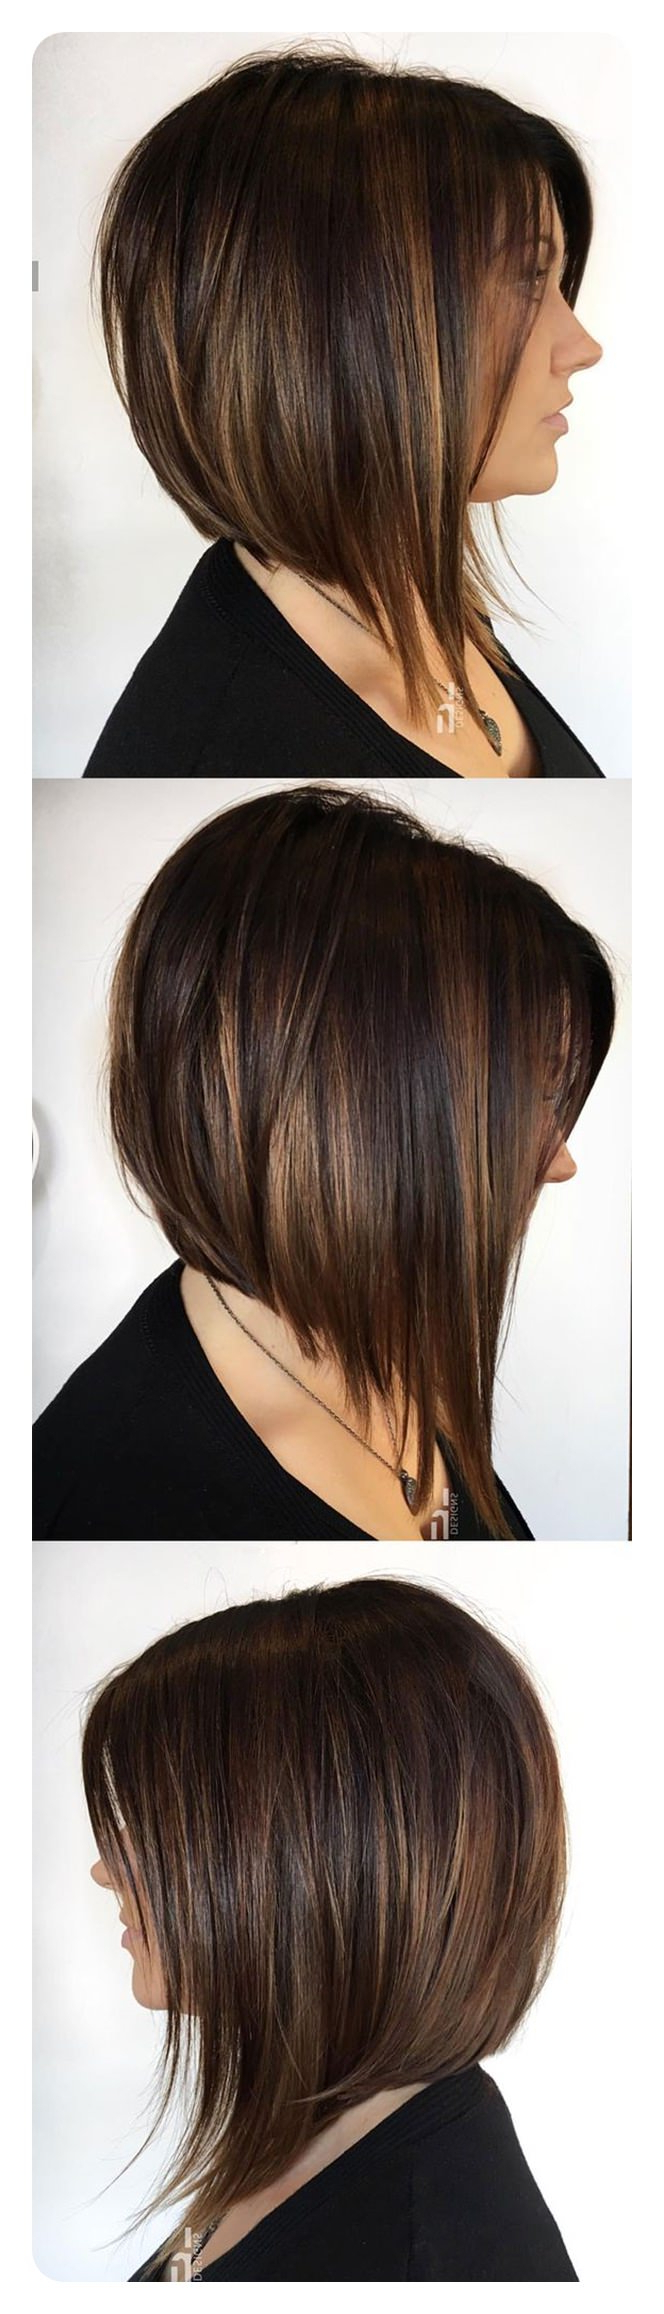 92 Layered Inverted Bob Hairstyles That You Should Try – Style Easily Pertaining To Inverted Brunette Bob Hairstyles With Feathered Highlights (Gallery 20 of 20)